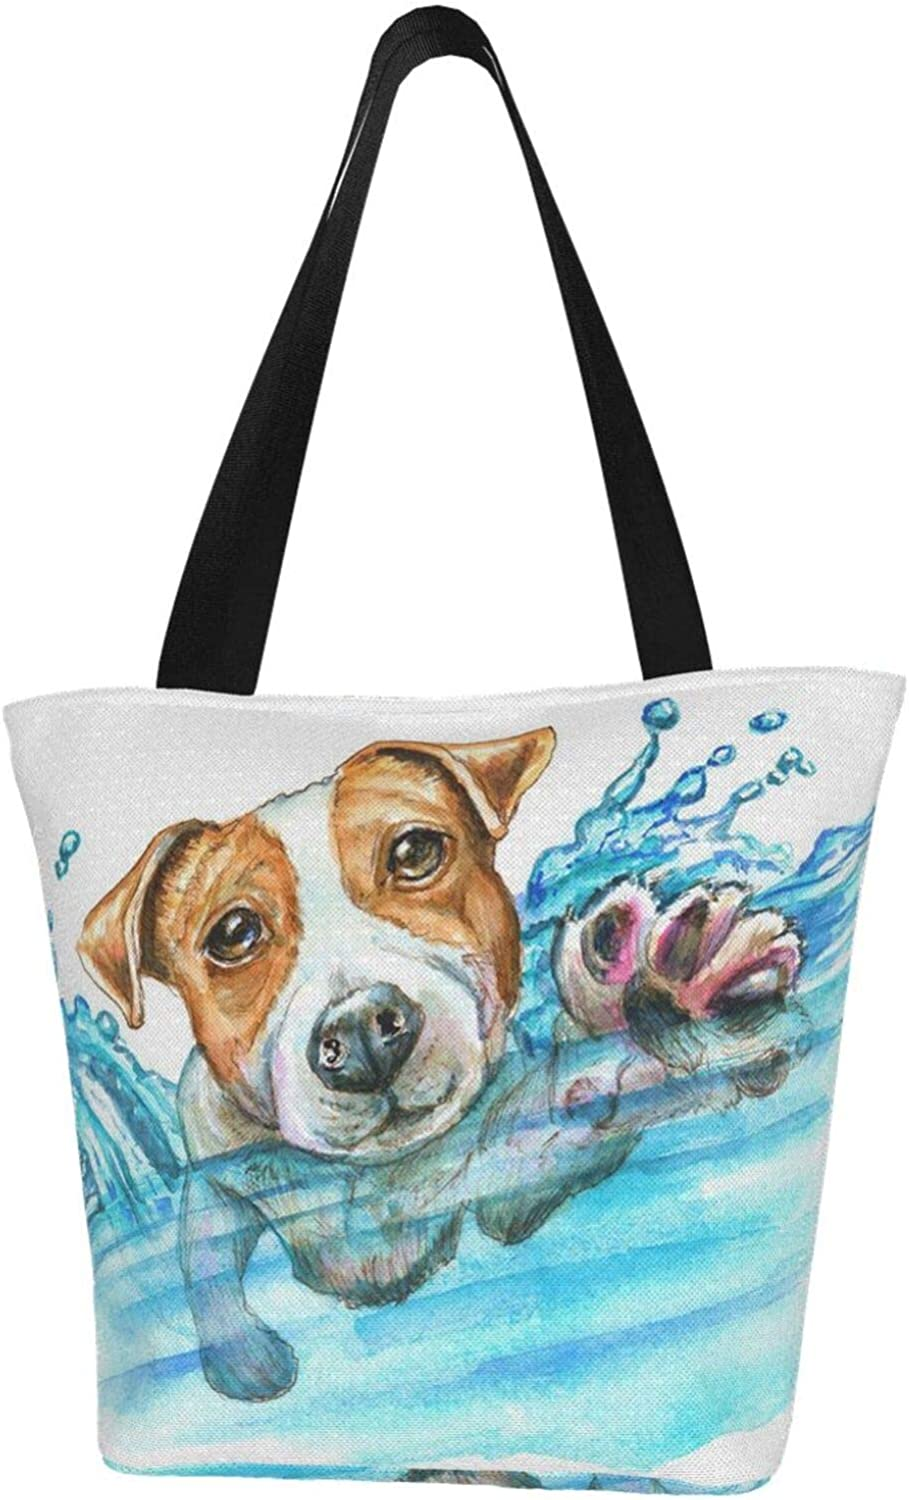 Funny Swmming Dog Cute Jack Russell Terrier Puppy Pet Themed Printed Women Canvas Handbag Zipper Shoulder Bag Work Booksbag Tote Purse Leisure Hobo Bag For Shopping